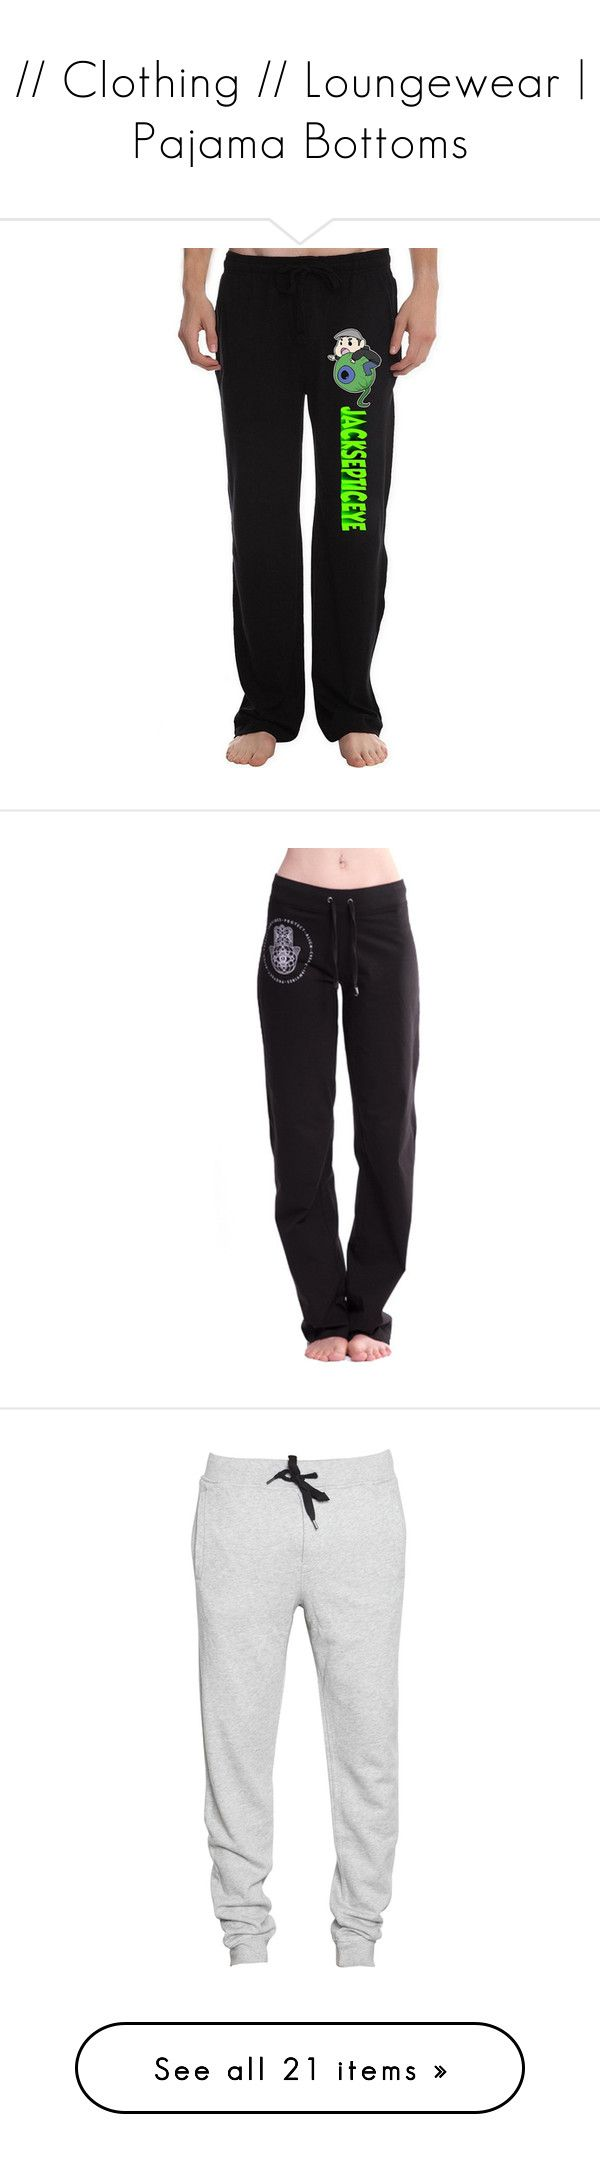 """""""// Clothing // Loungewear   Pajama Bottoms"""" by xxsweet13etrayalxx ❤ liked on Polyvore featuring men's fashion, men's clothing, men's activewear, men's activewear pants, mens sweat pants, mens activewear, mens activewear pants, mens sweatpants, men's sleepwear and black"""